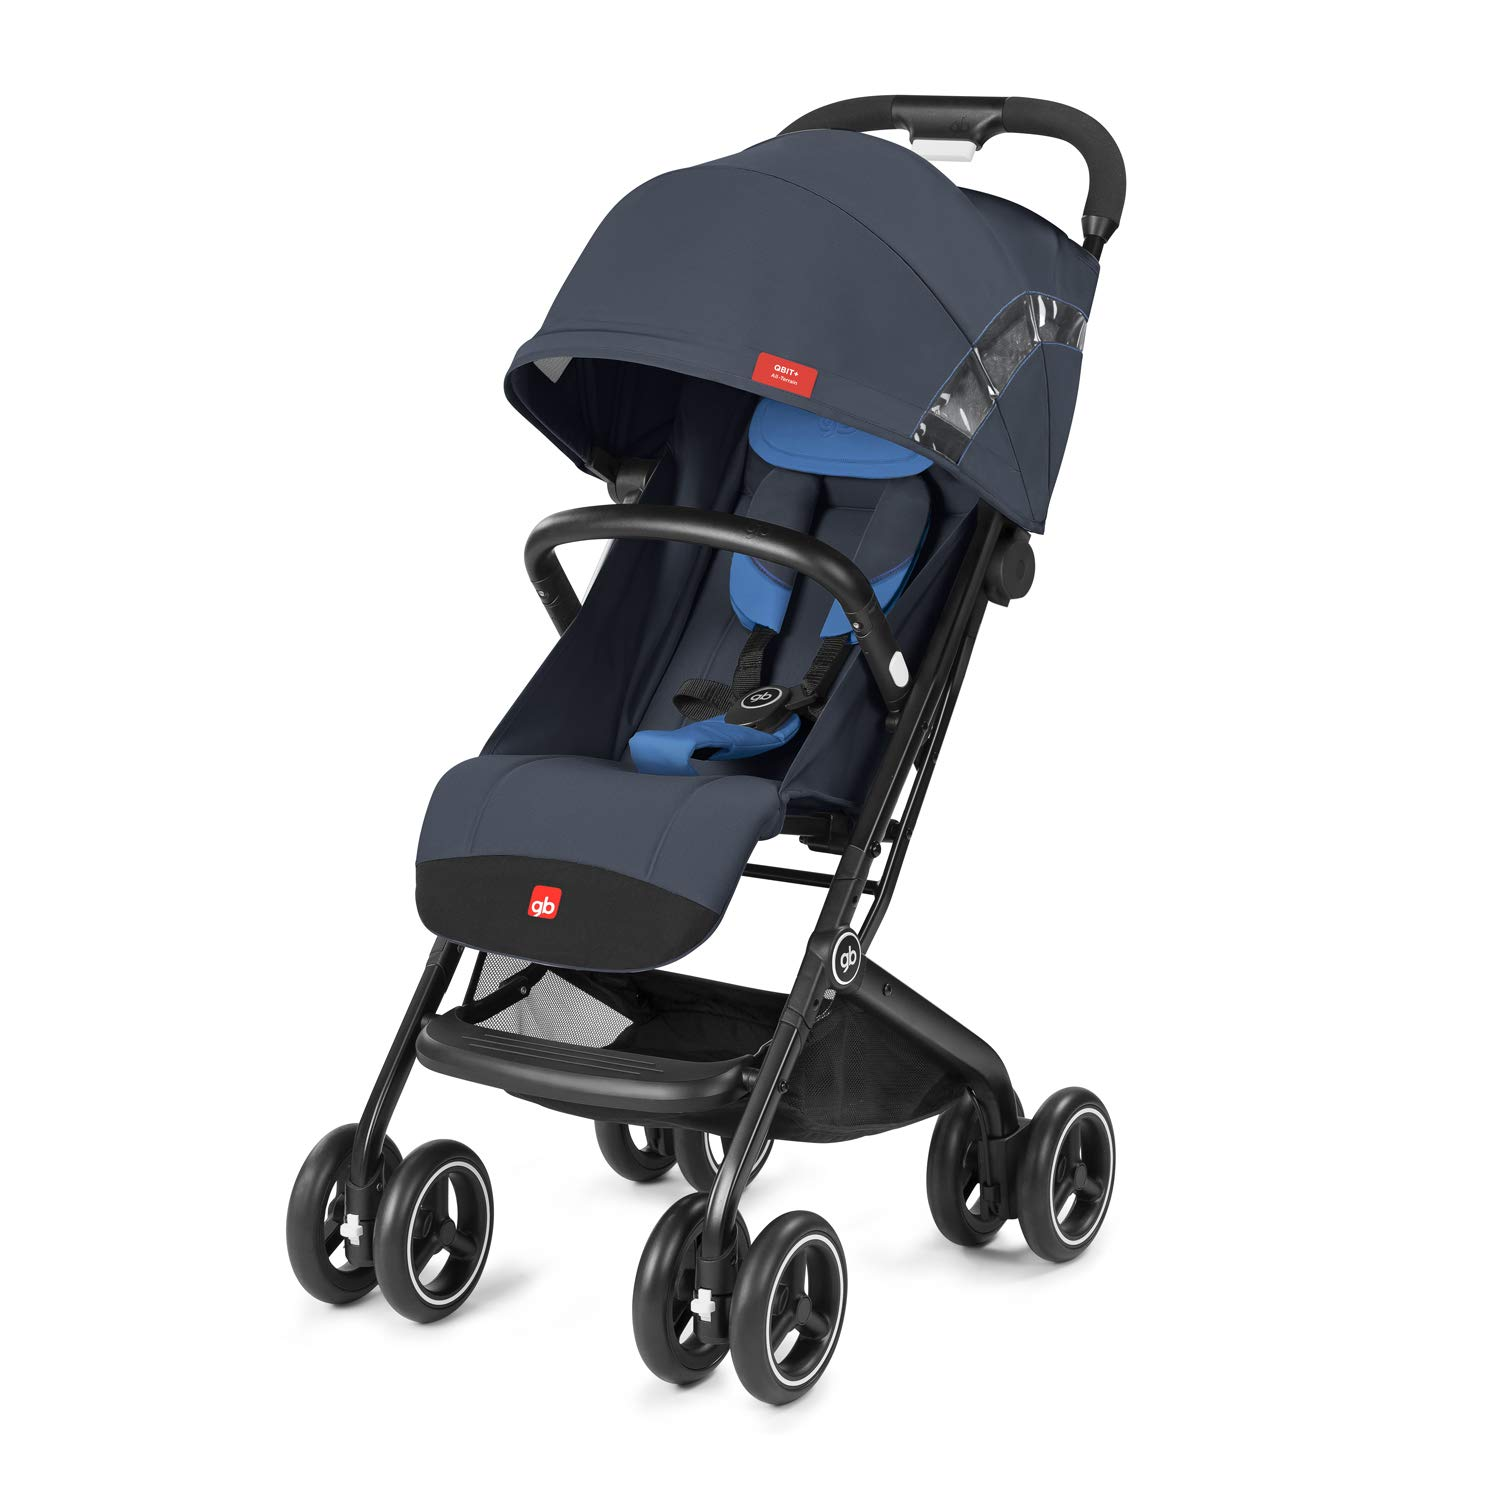 gb 2019 Buggy QBIT+ All-Terrain with Bumper Bar''Night Blue''- from Birth up to 17 kg (Approx. 4 Years) - GoodBaby QBIT Plus